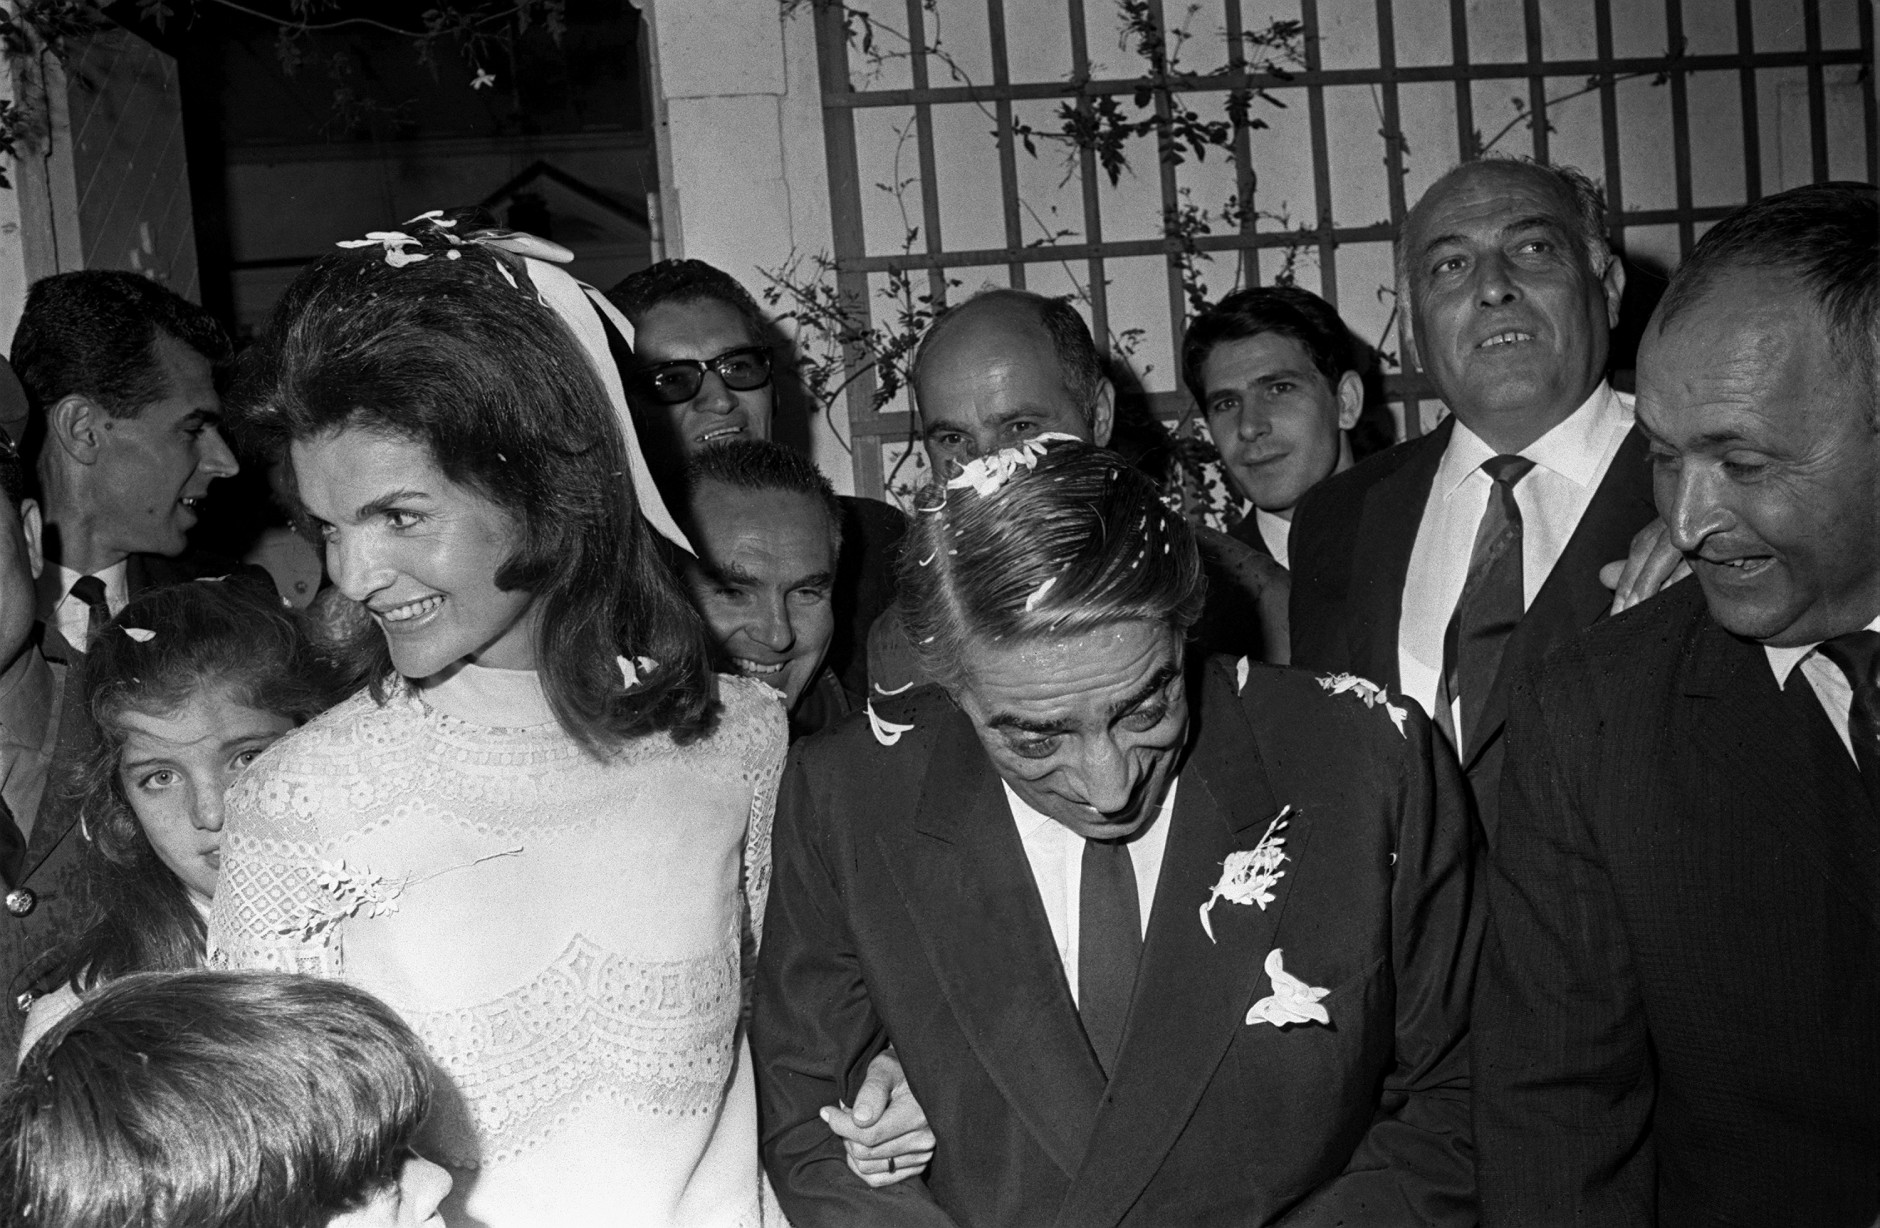 With daughter Caroline peeking over her right shoulder, Jacqueline Kennedy Onassis leaves the chapel with her new husband, Greek shipping magnate Aristotle Onassis, after their wedding on the Greek Island of Scorpios, Oct. 20, 1968.  (AP Photo/Jim Pringle)